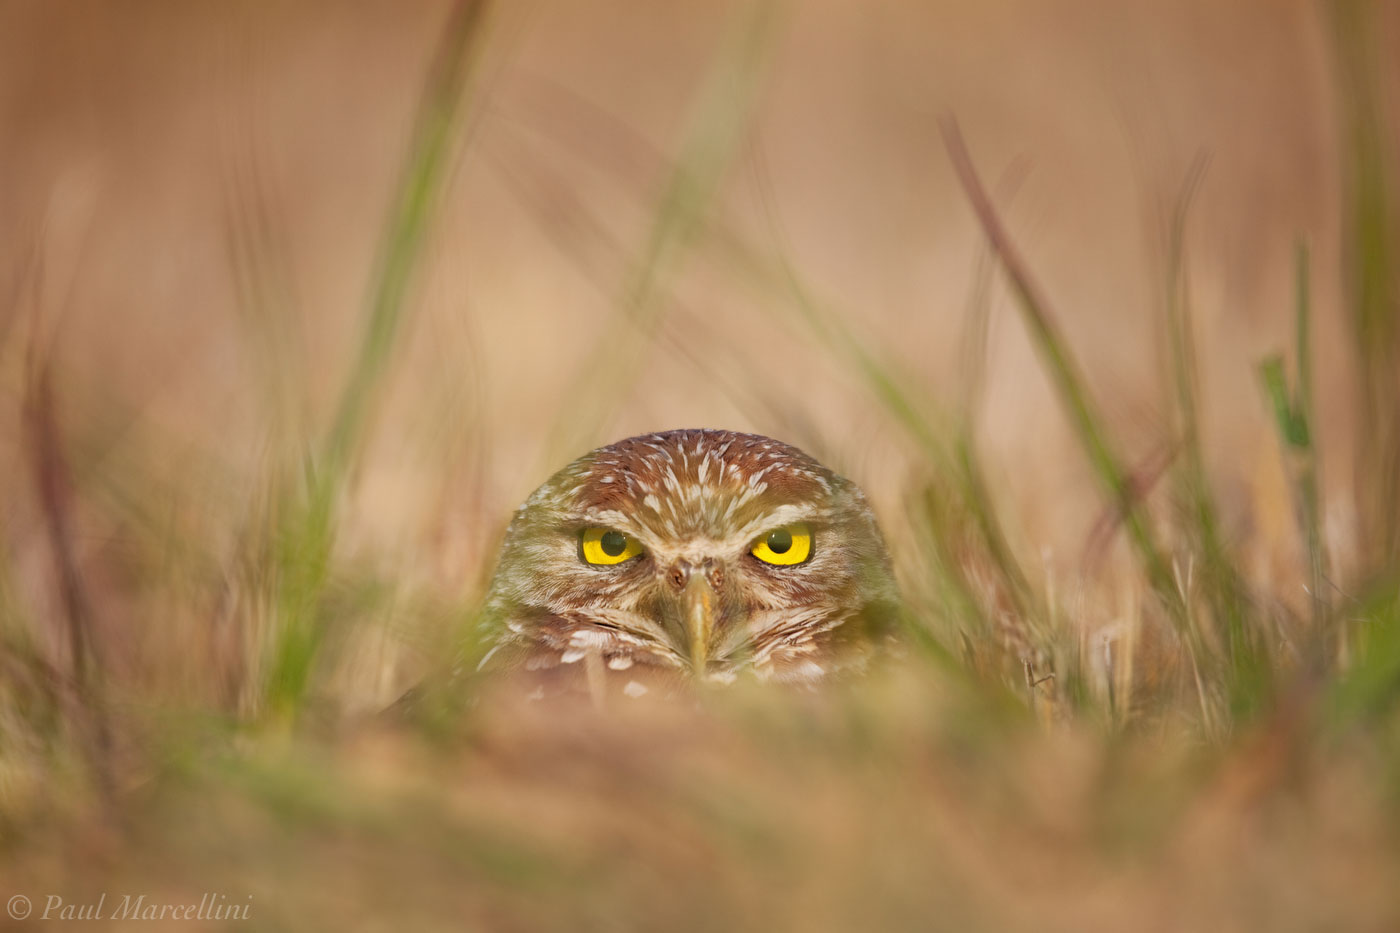 A Burrowing Owl (Athene cunicularia) give a sinister stare from its burrow.